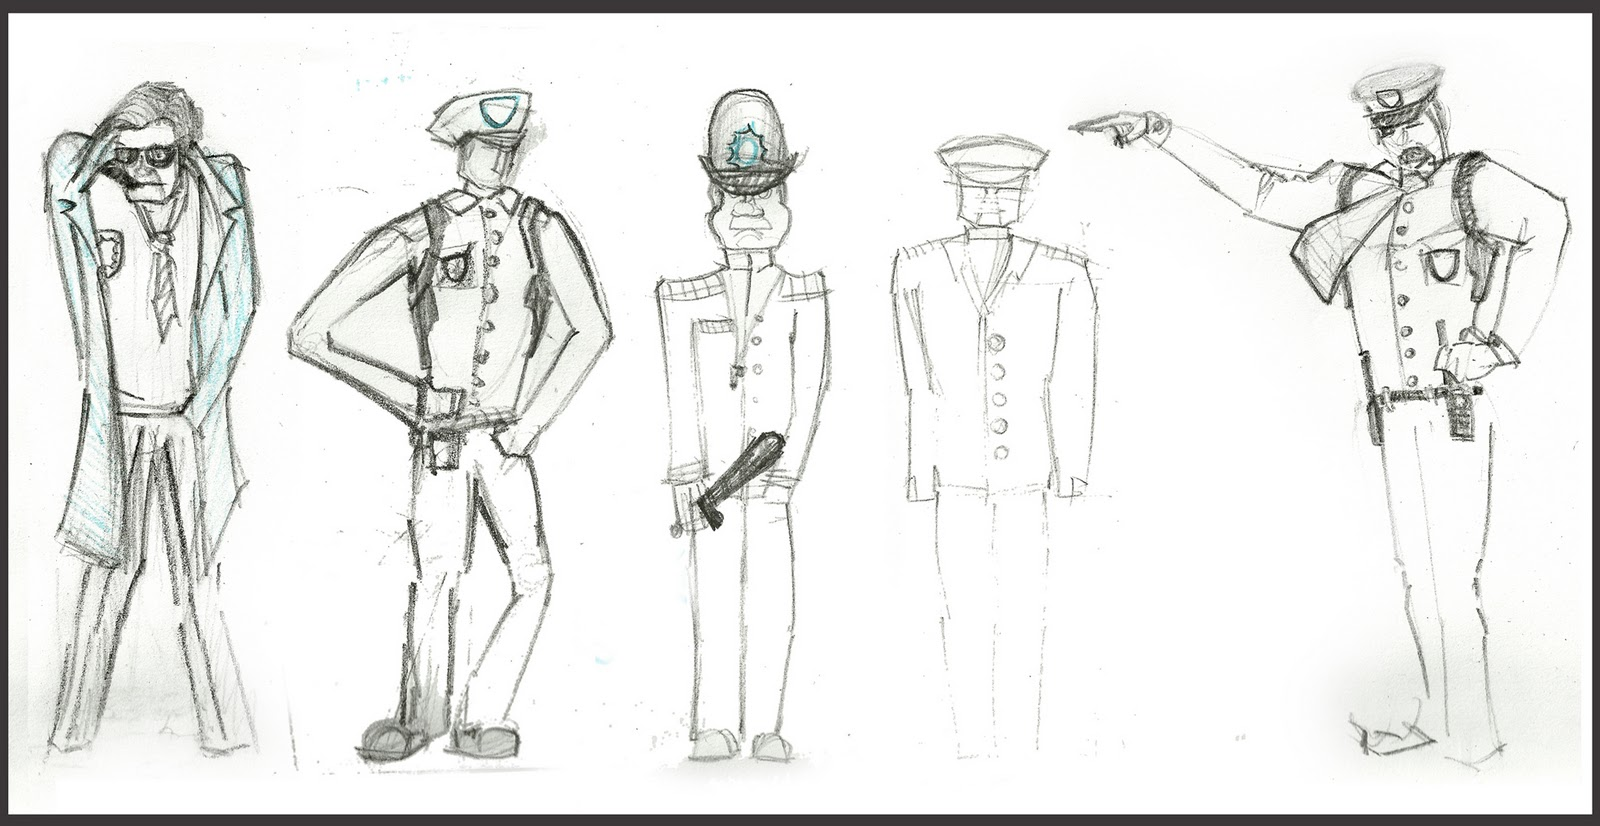 Character Design Lecture : Yolantele character design lectures and